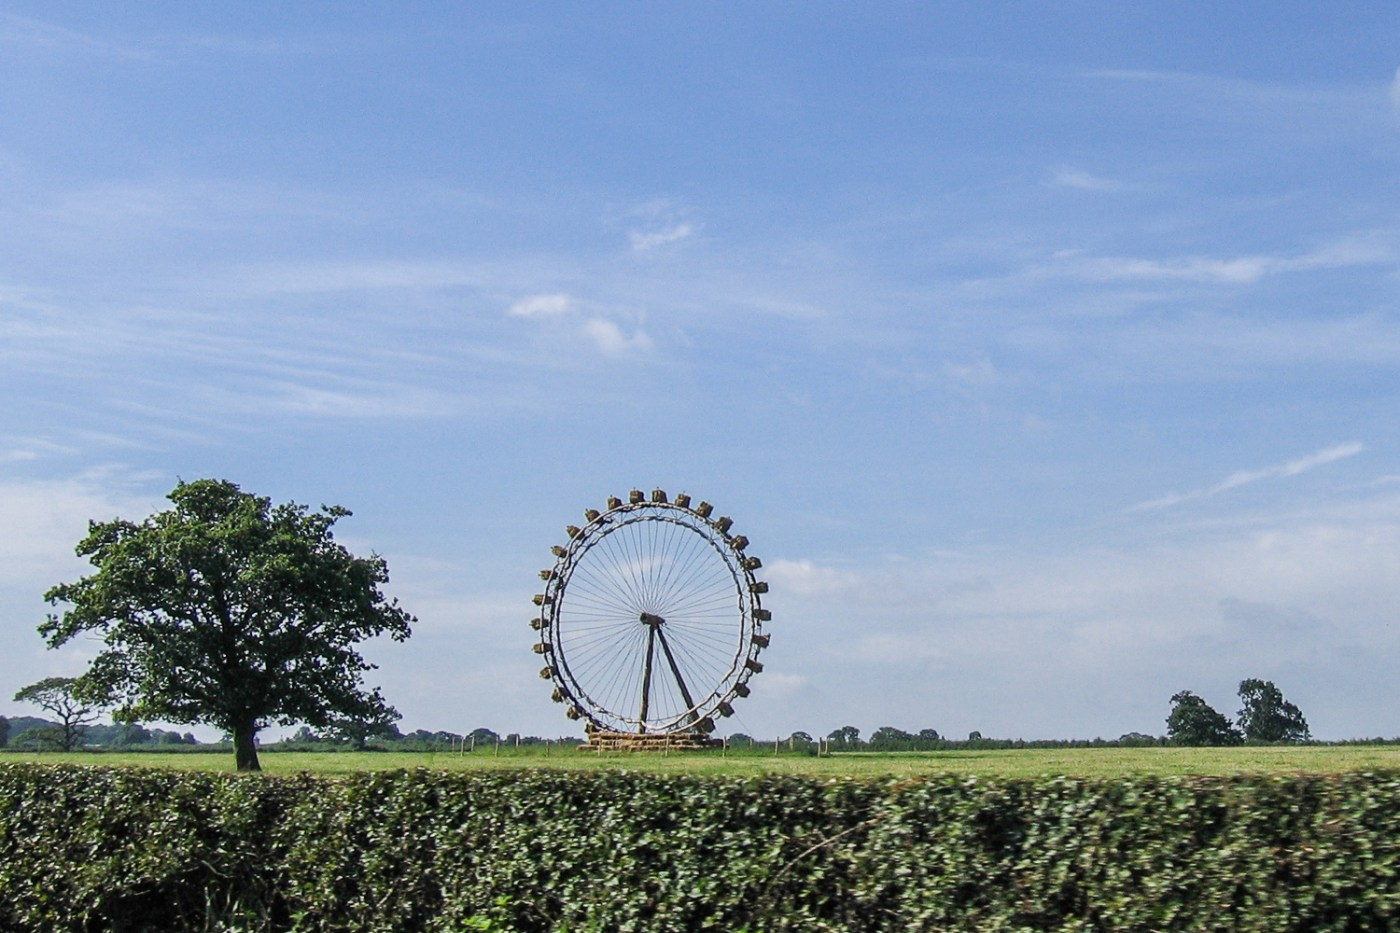 Snugbury's Cheshire Wheel